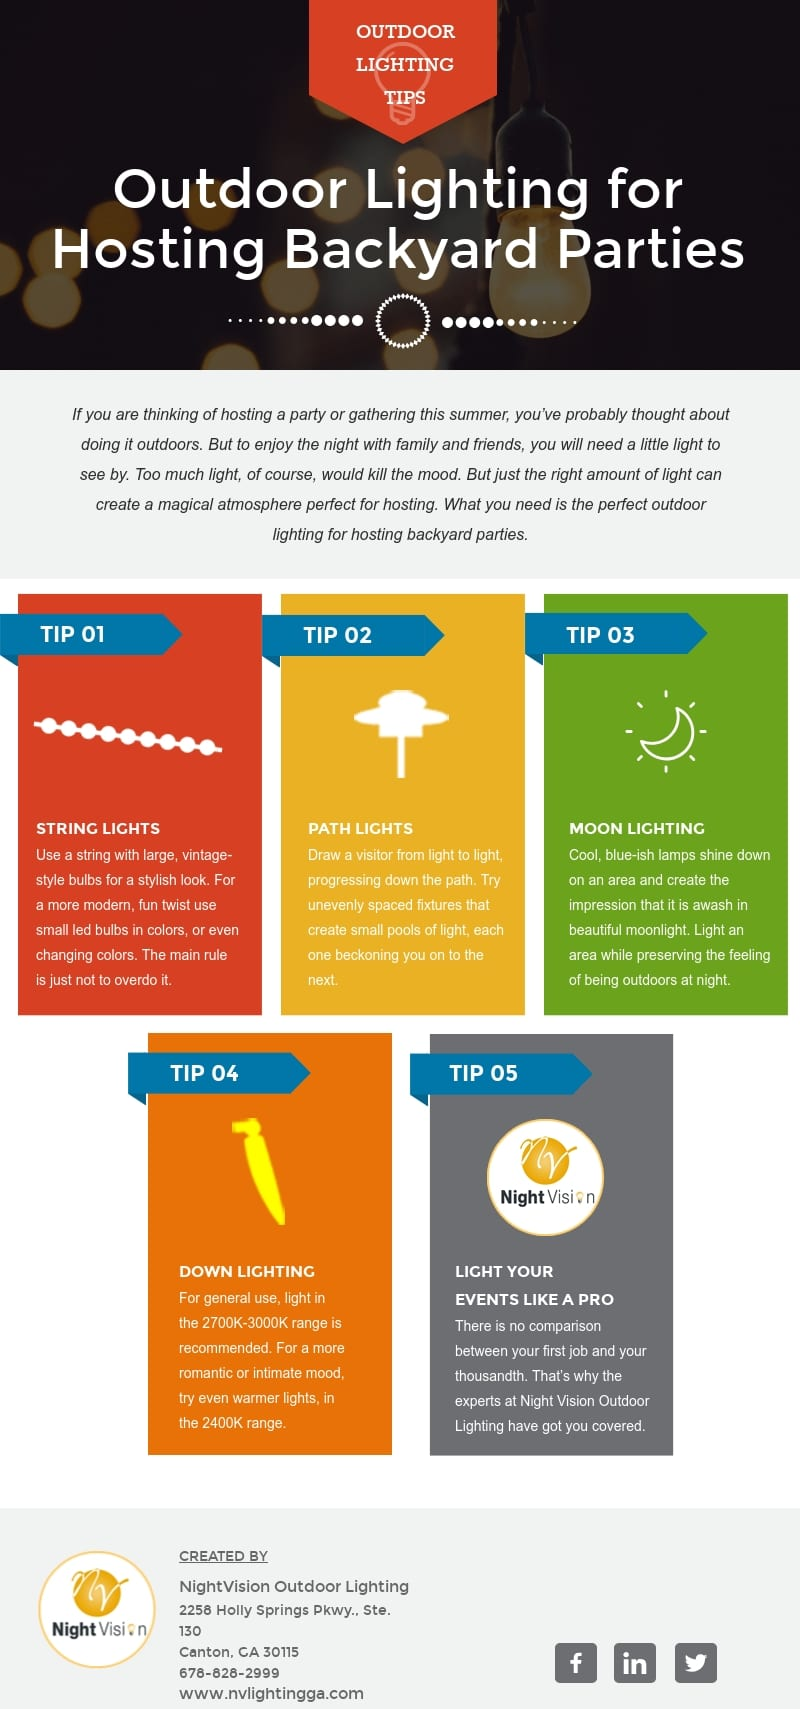 Outdoor Lighting for Hosting Backyard Parties [infographic]